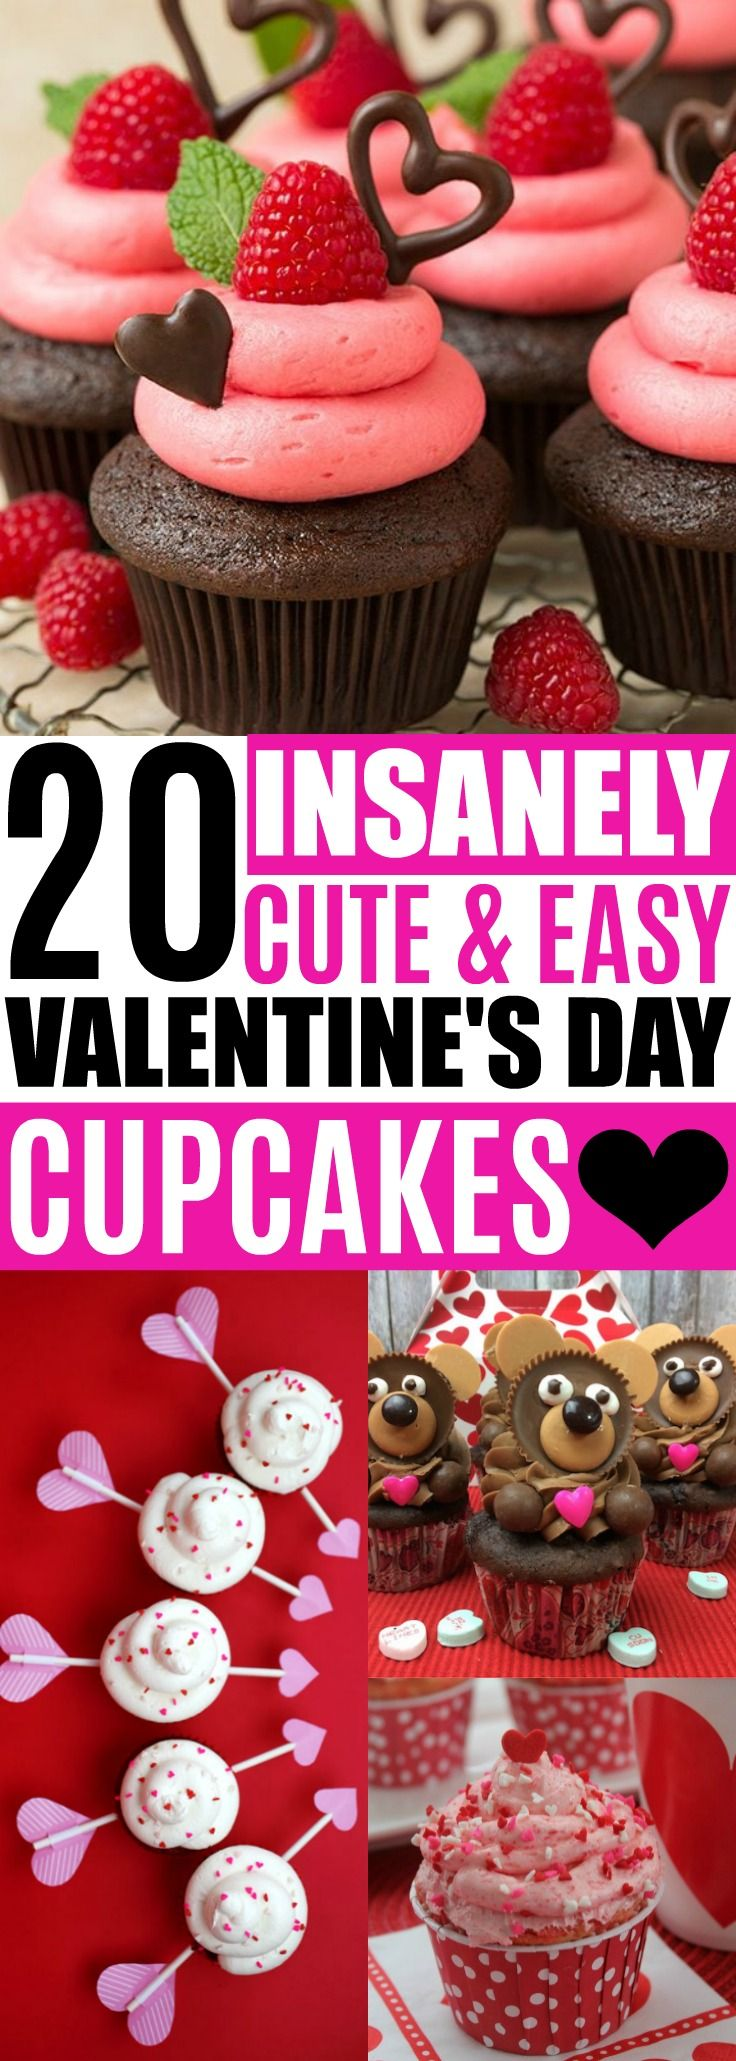 20 Cute Valentine S Day Cupcakes Everyone Will Love Cupcake